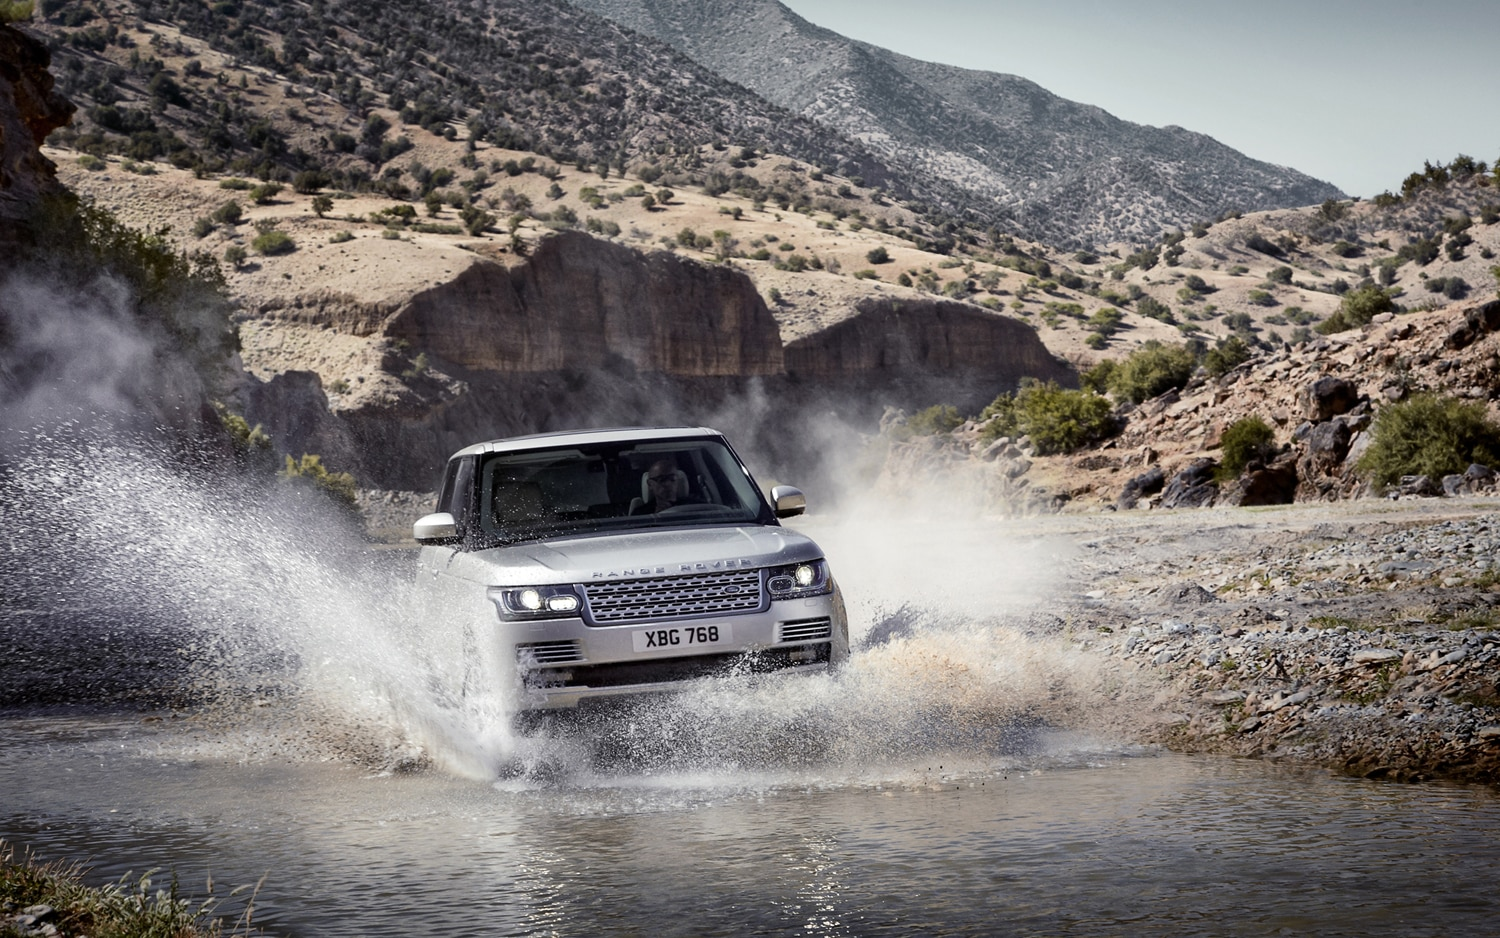 2013 Land Rover Range Rover Front Three Quarter In River